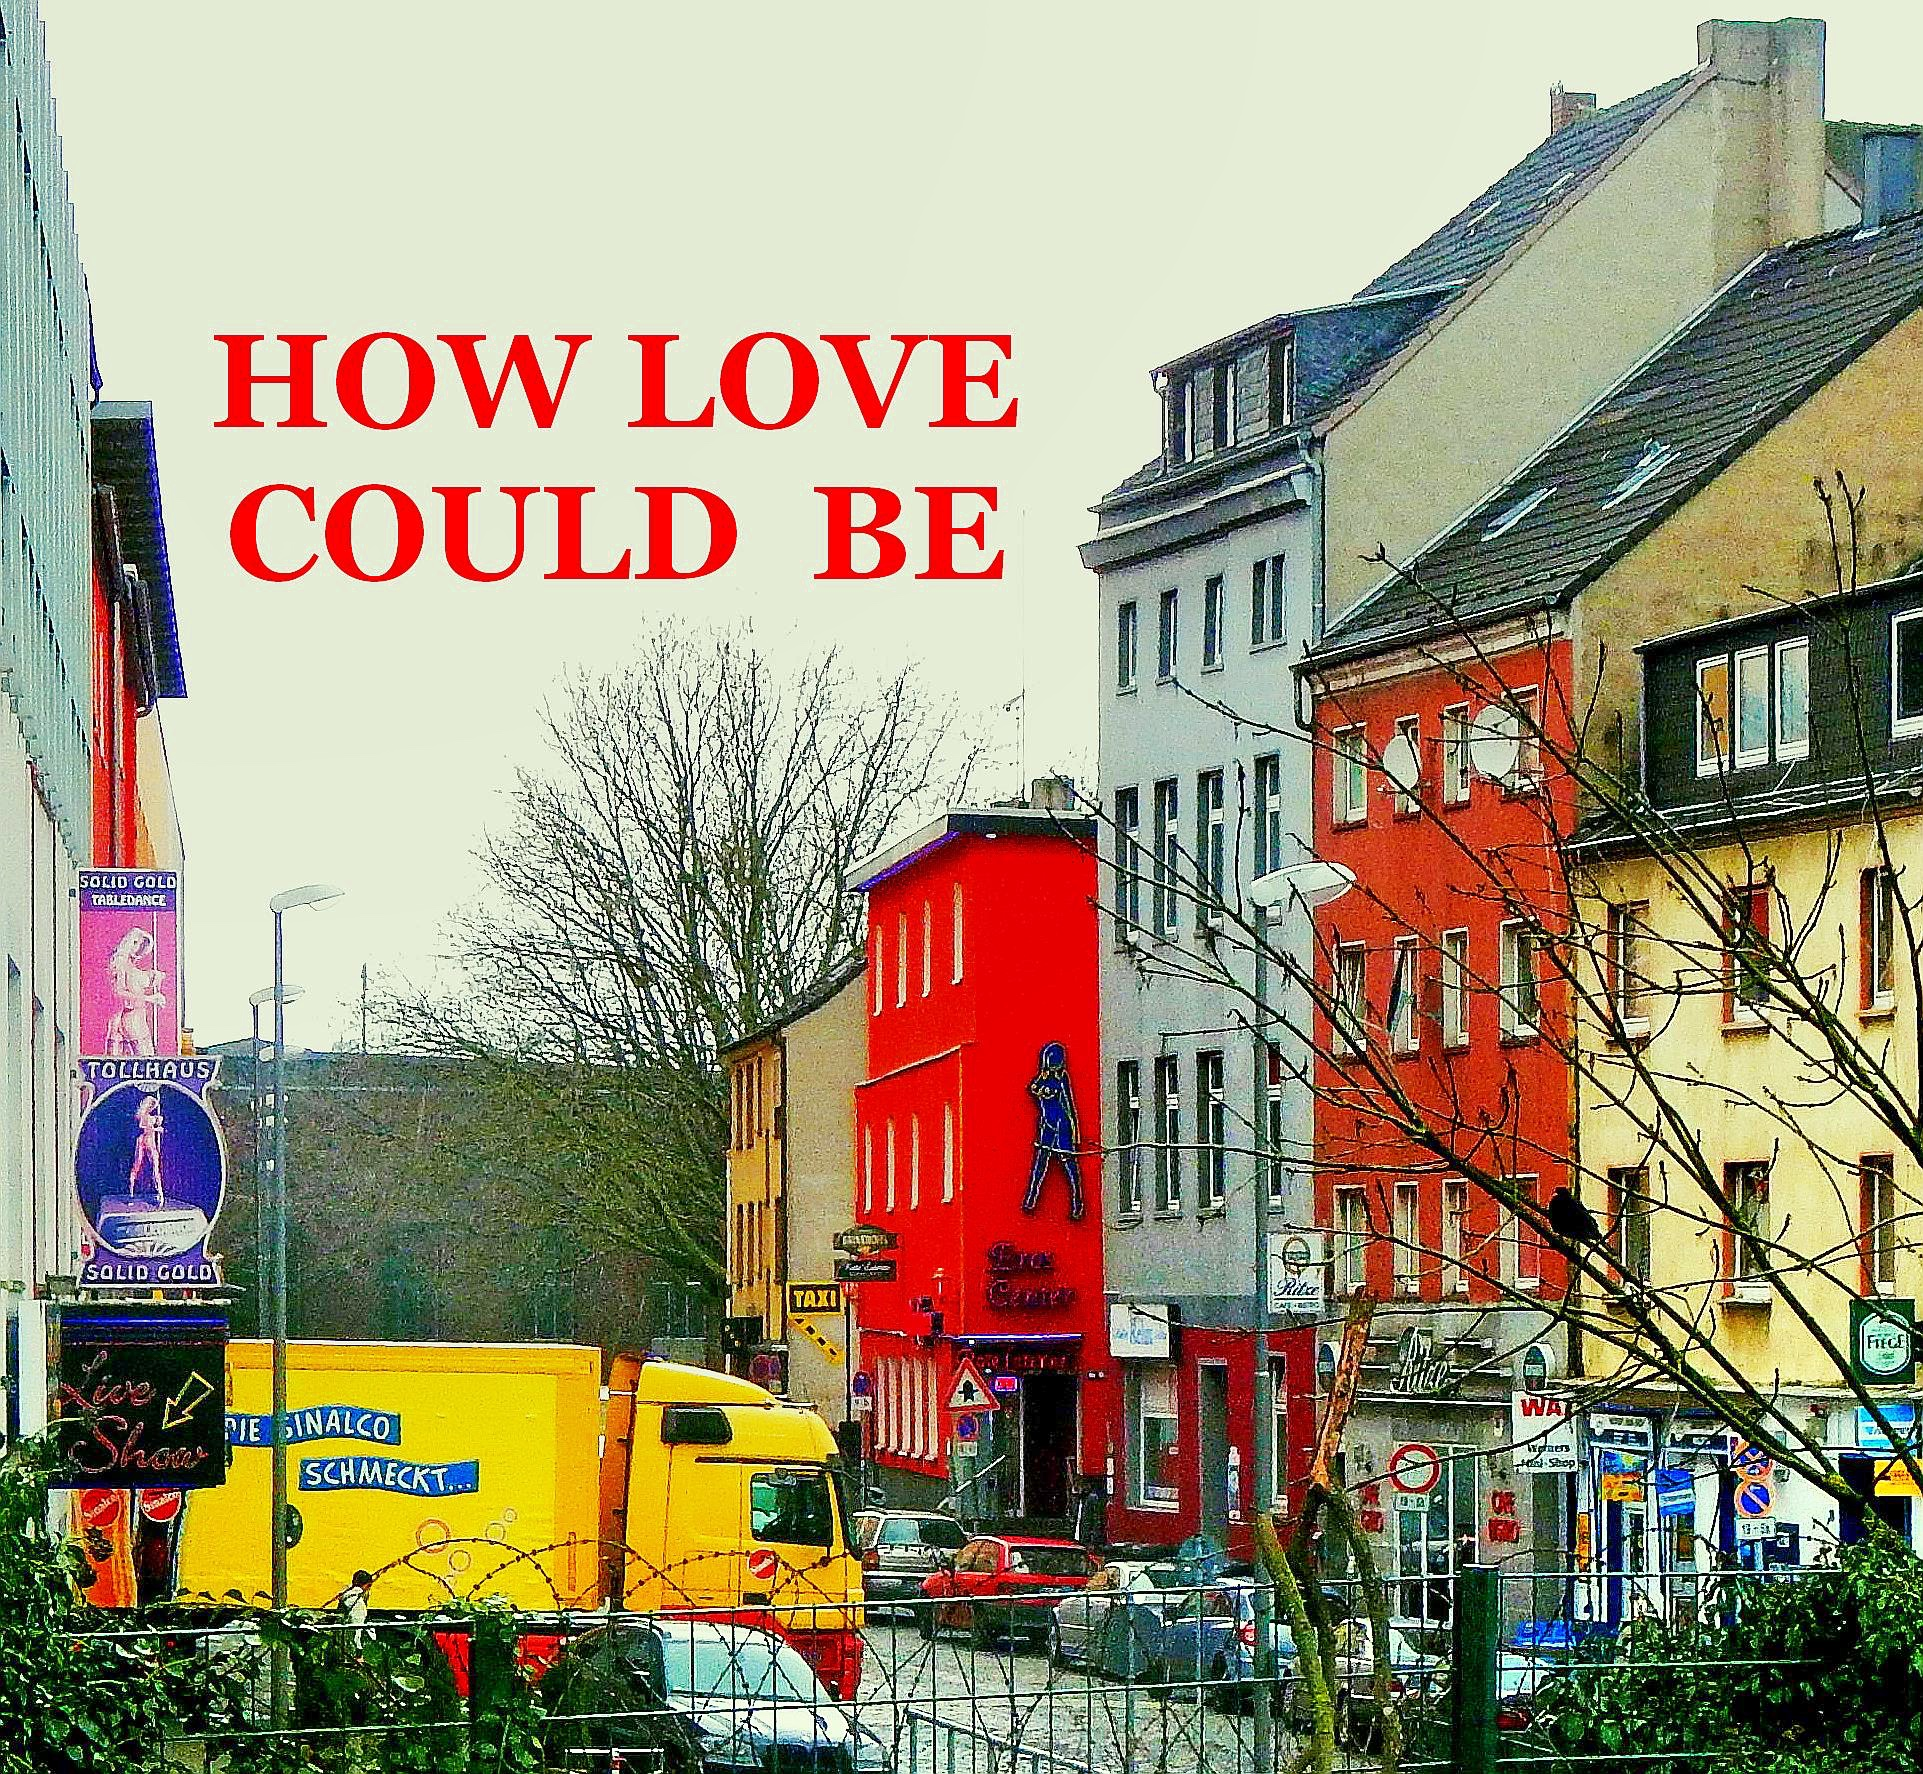 How Love Could Be #3 - bochum punkt cool